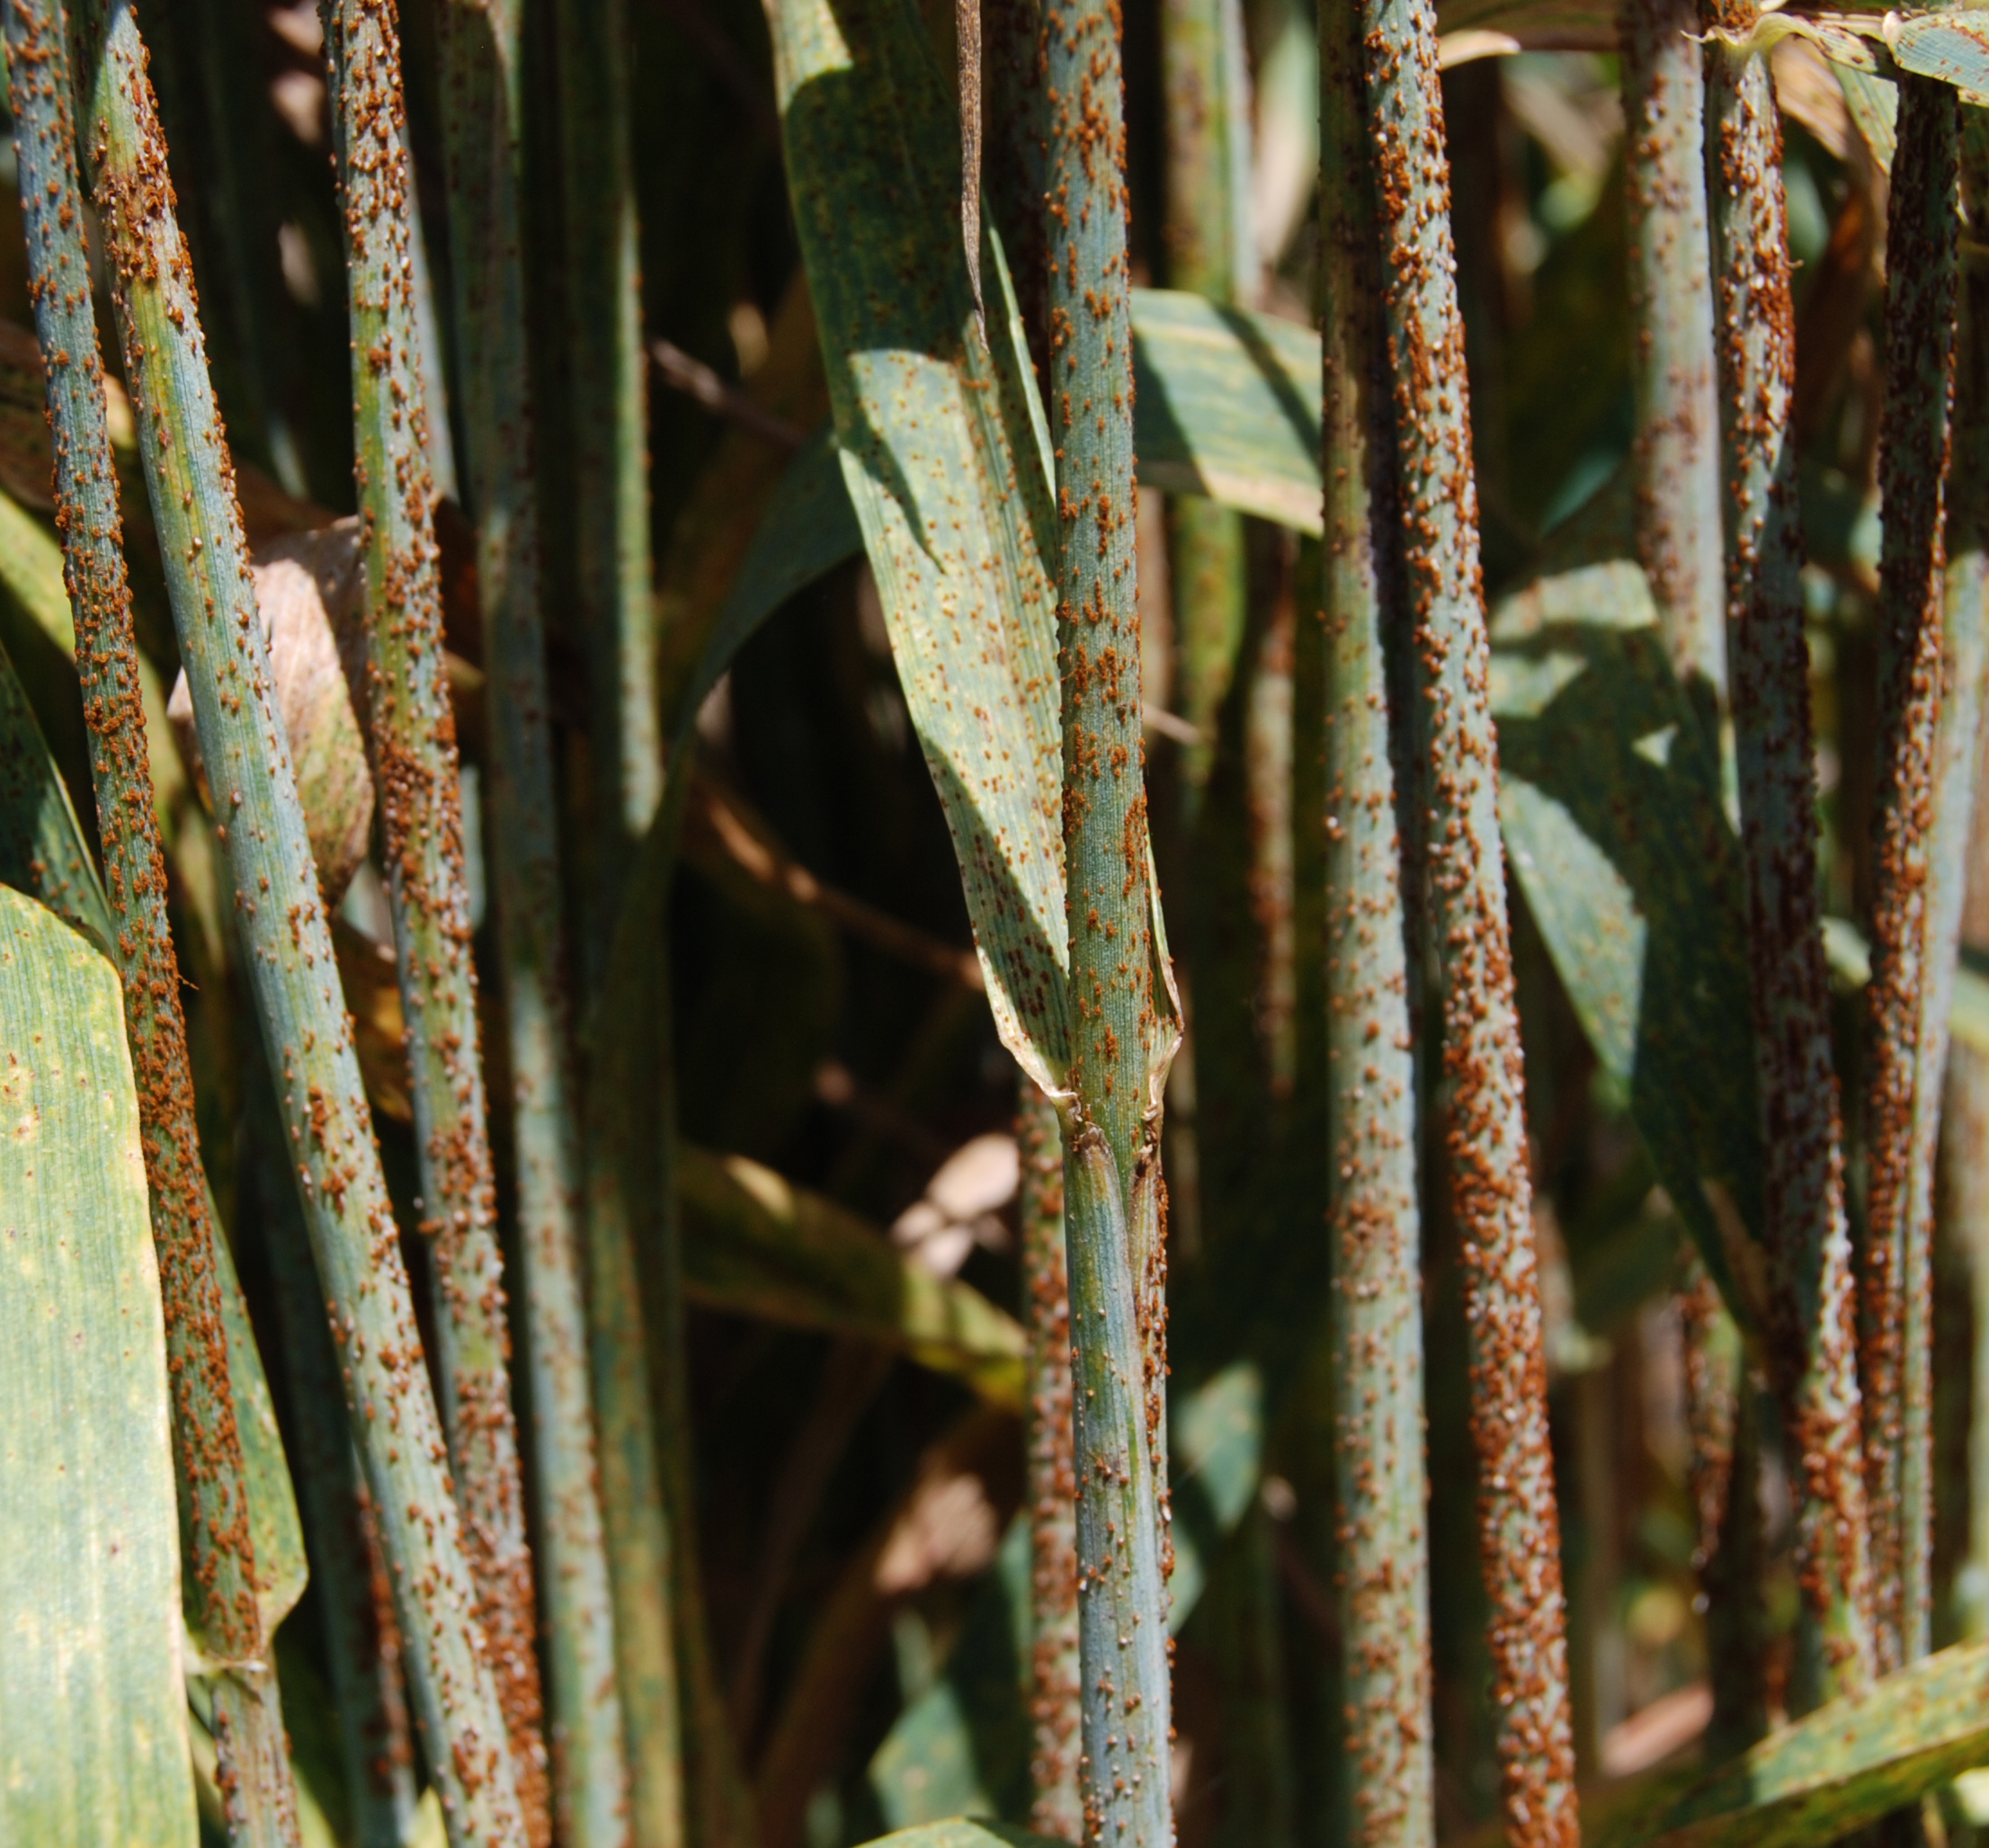 Wheat stems with rust